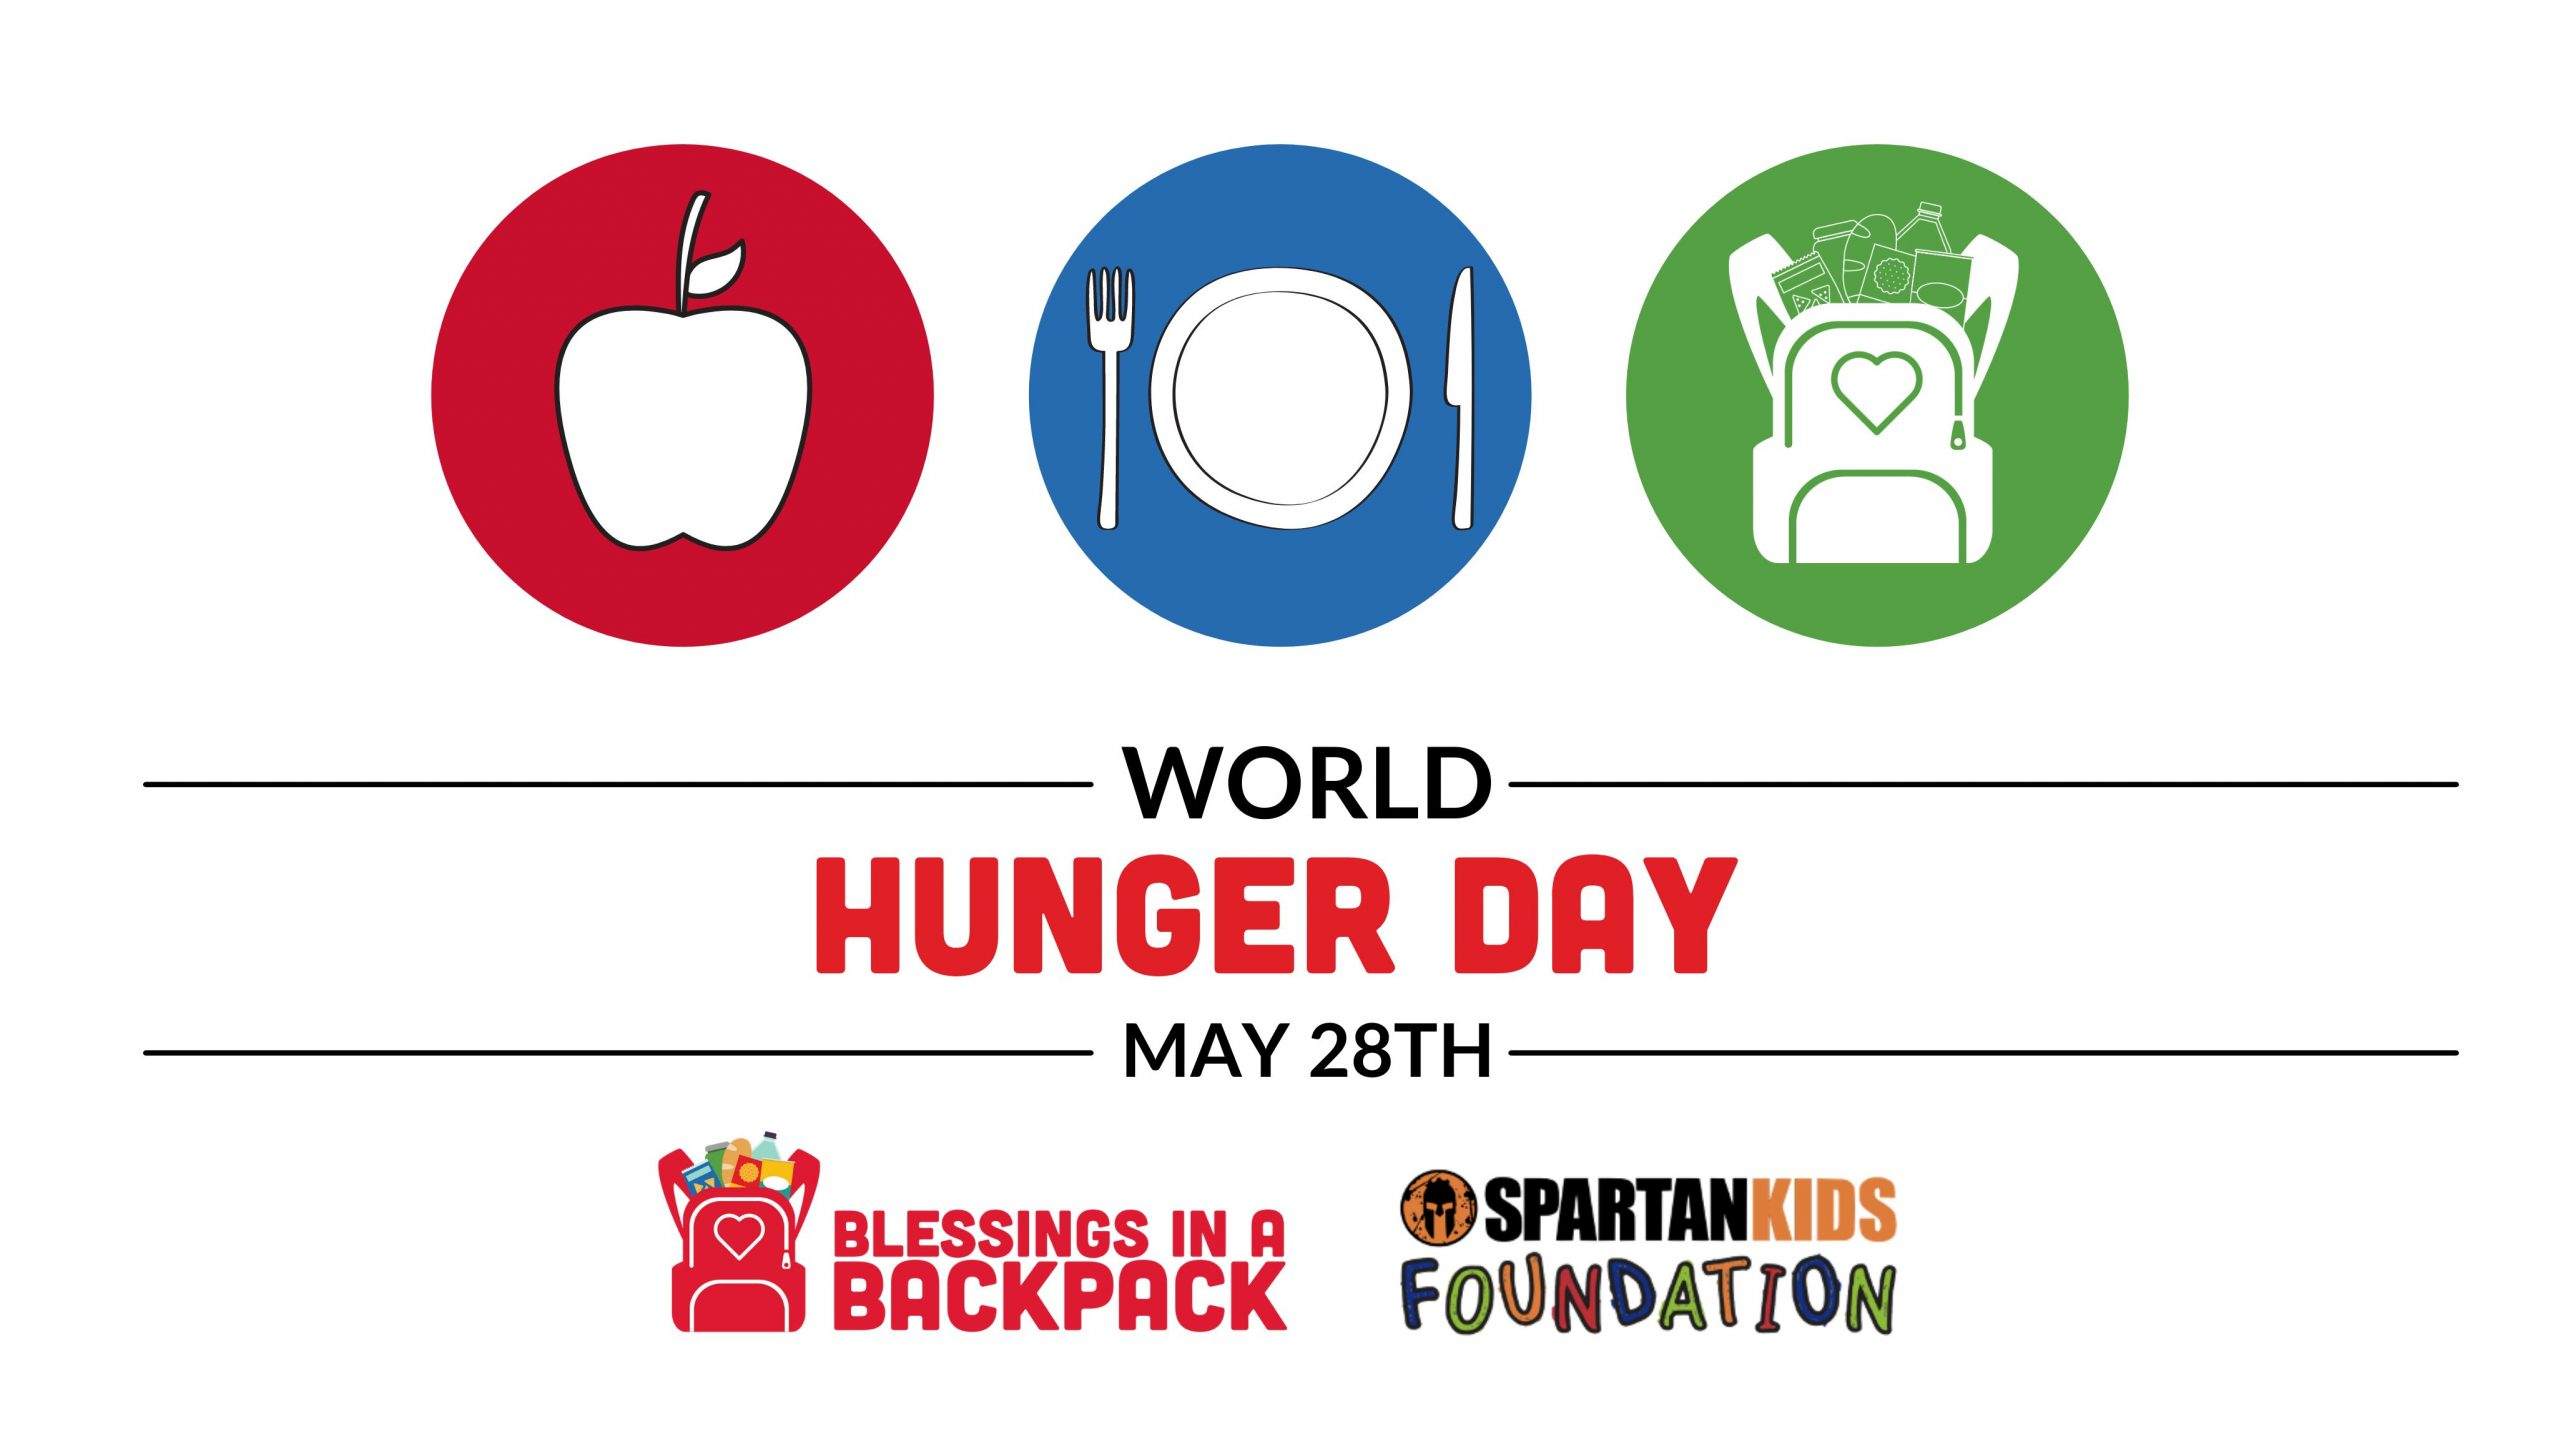 Spartan Kids Foundation Matching $3,000 in Blessings SWFL Donations on World Hunger Day